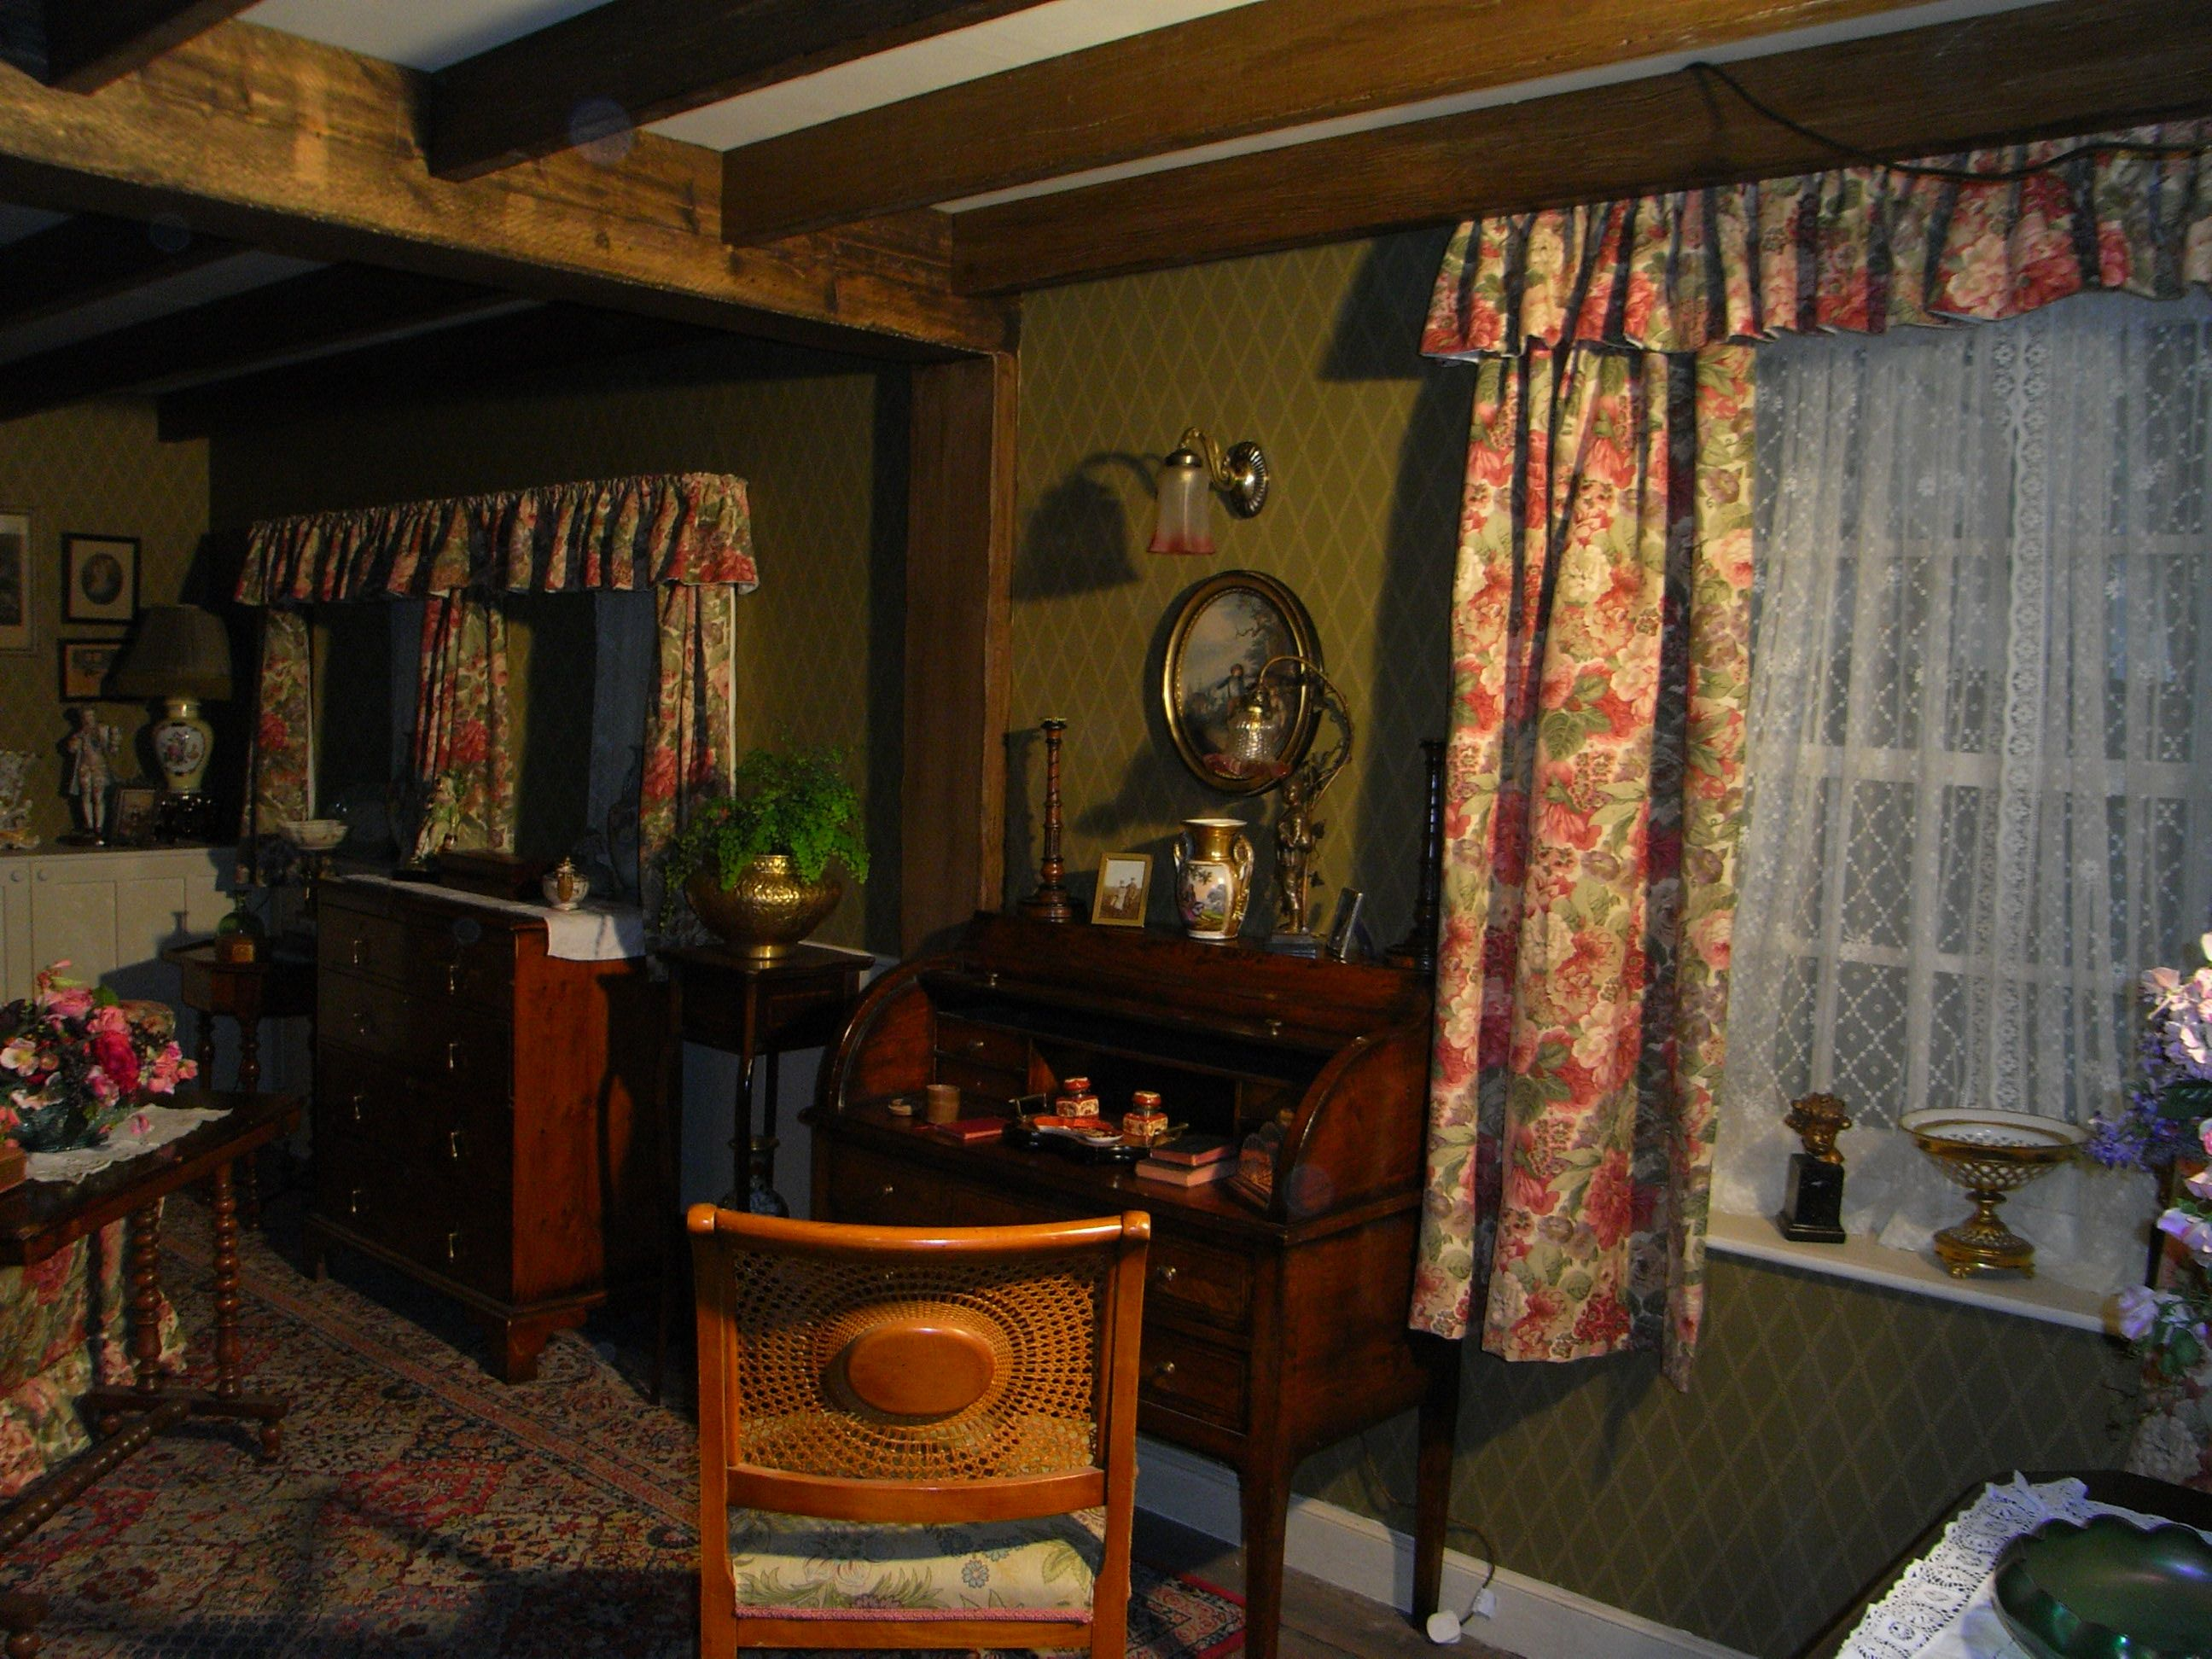 A shot of the original set from the Miss Marple ITV series. This set first appeared in Marple in 2004, starring Geraldine McEwan.